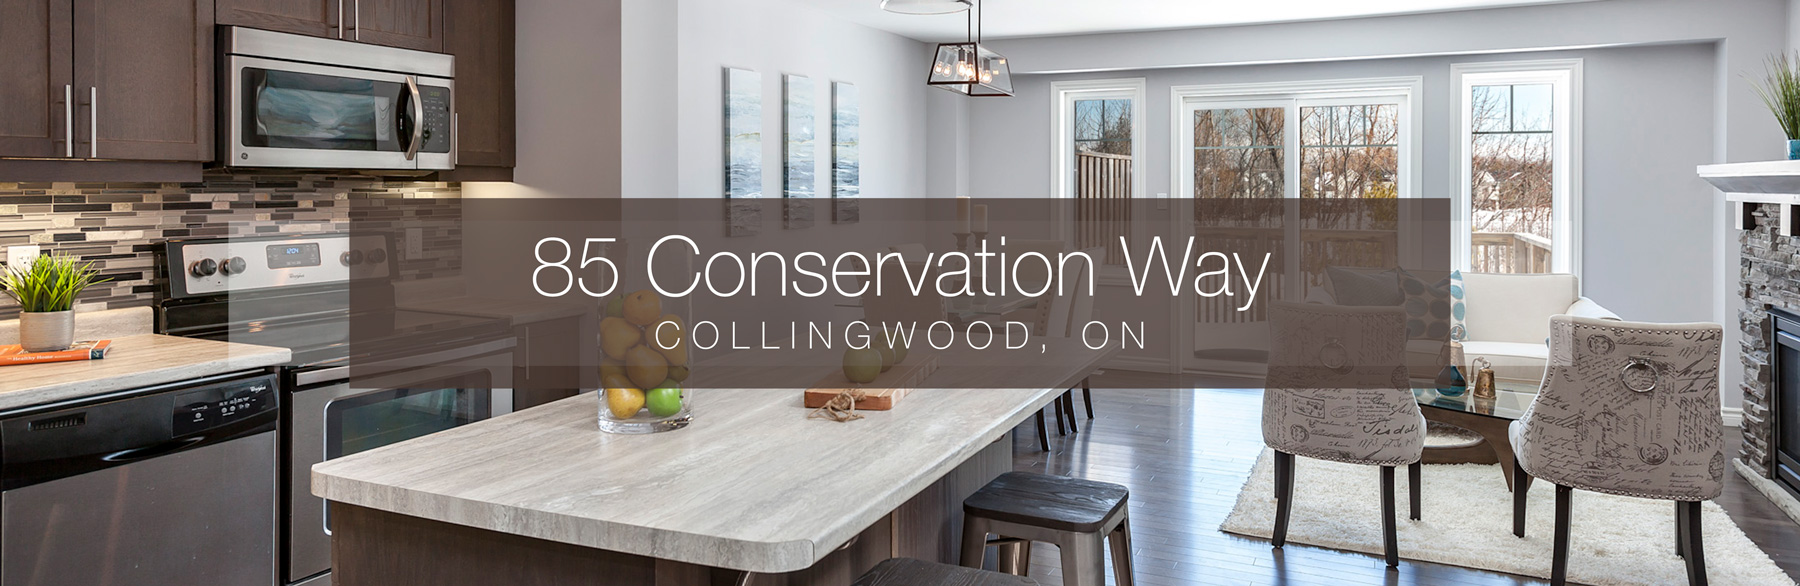 85-conservation-way-collingwood-ontario.jpg